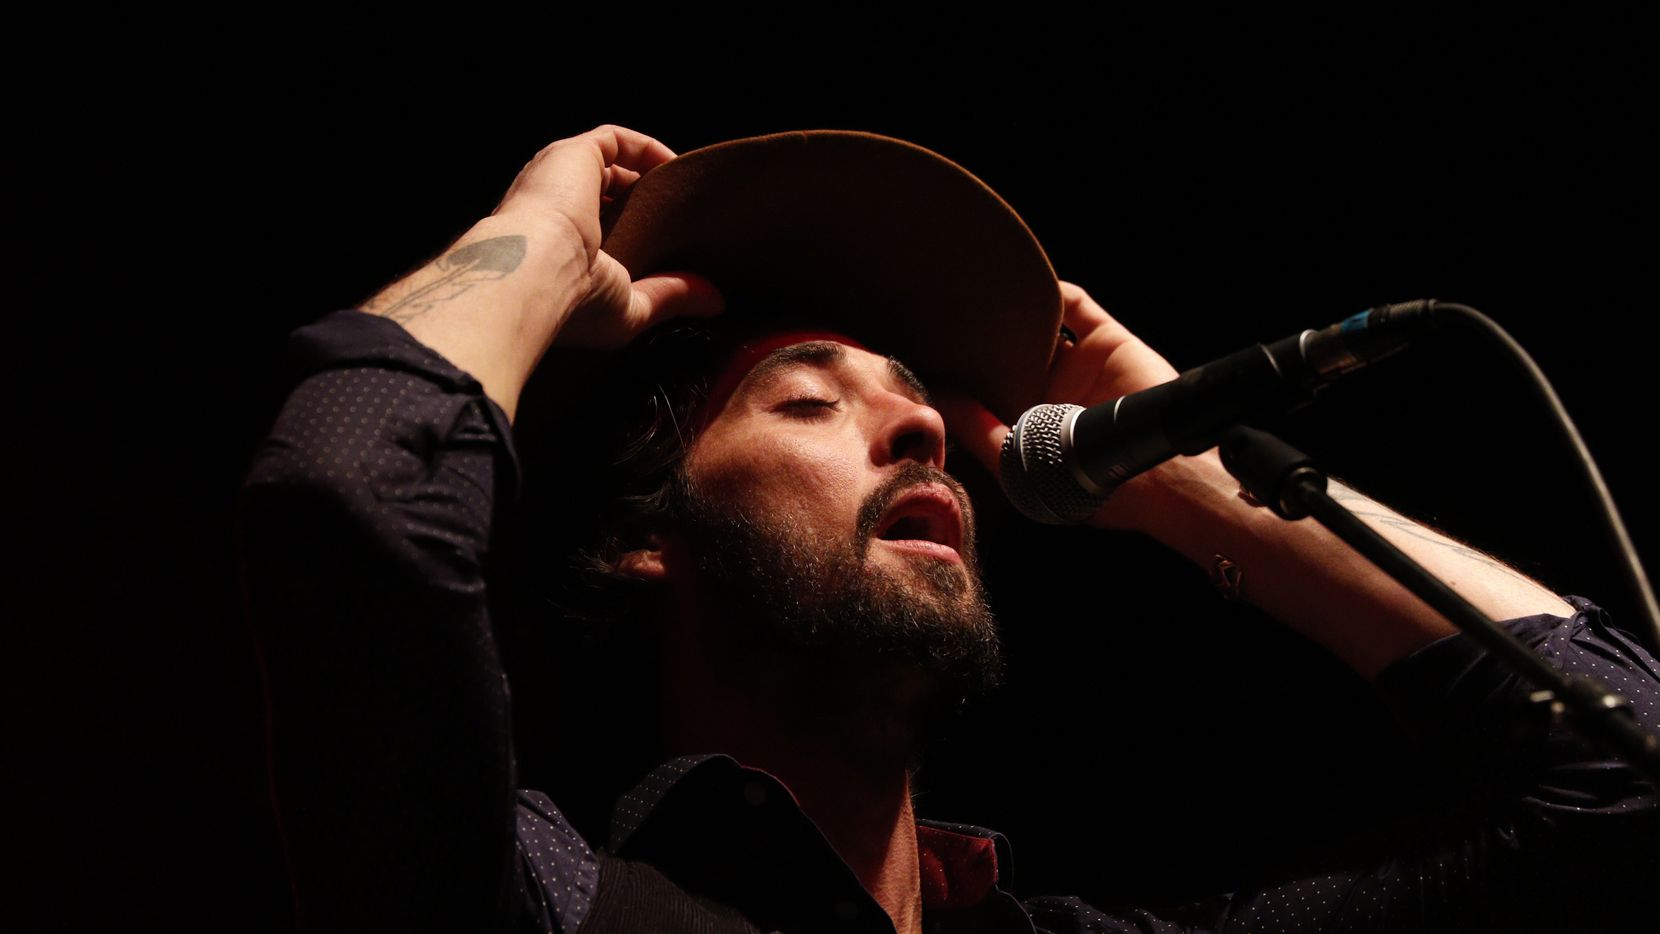 Ryan Bingham performs at South Side Ballroom in Dallas on March 6, 2015.